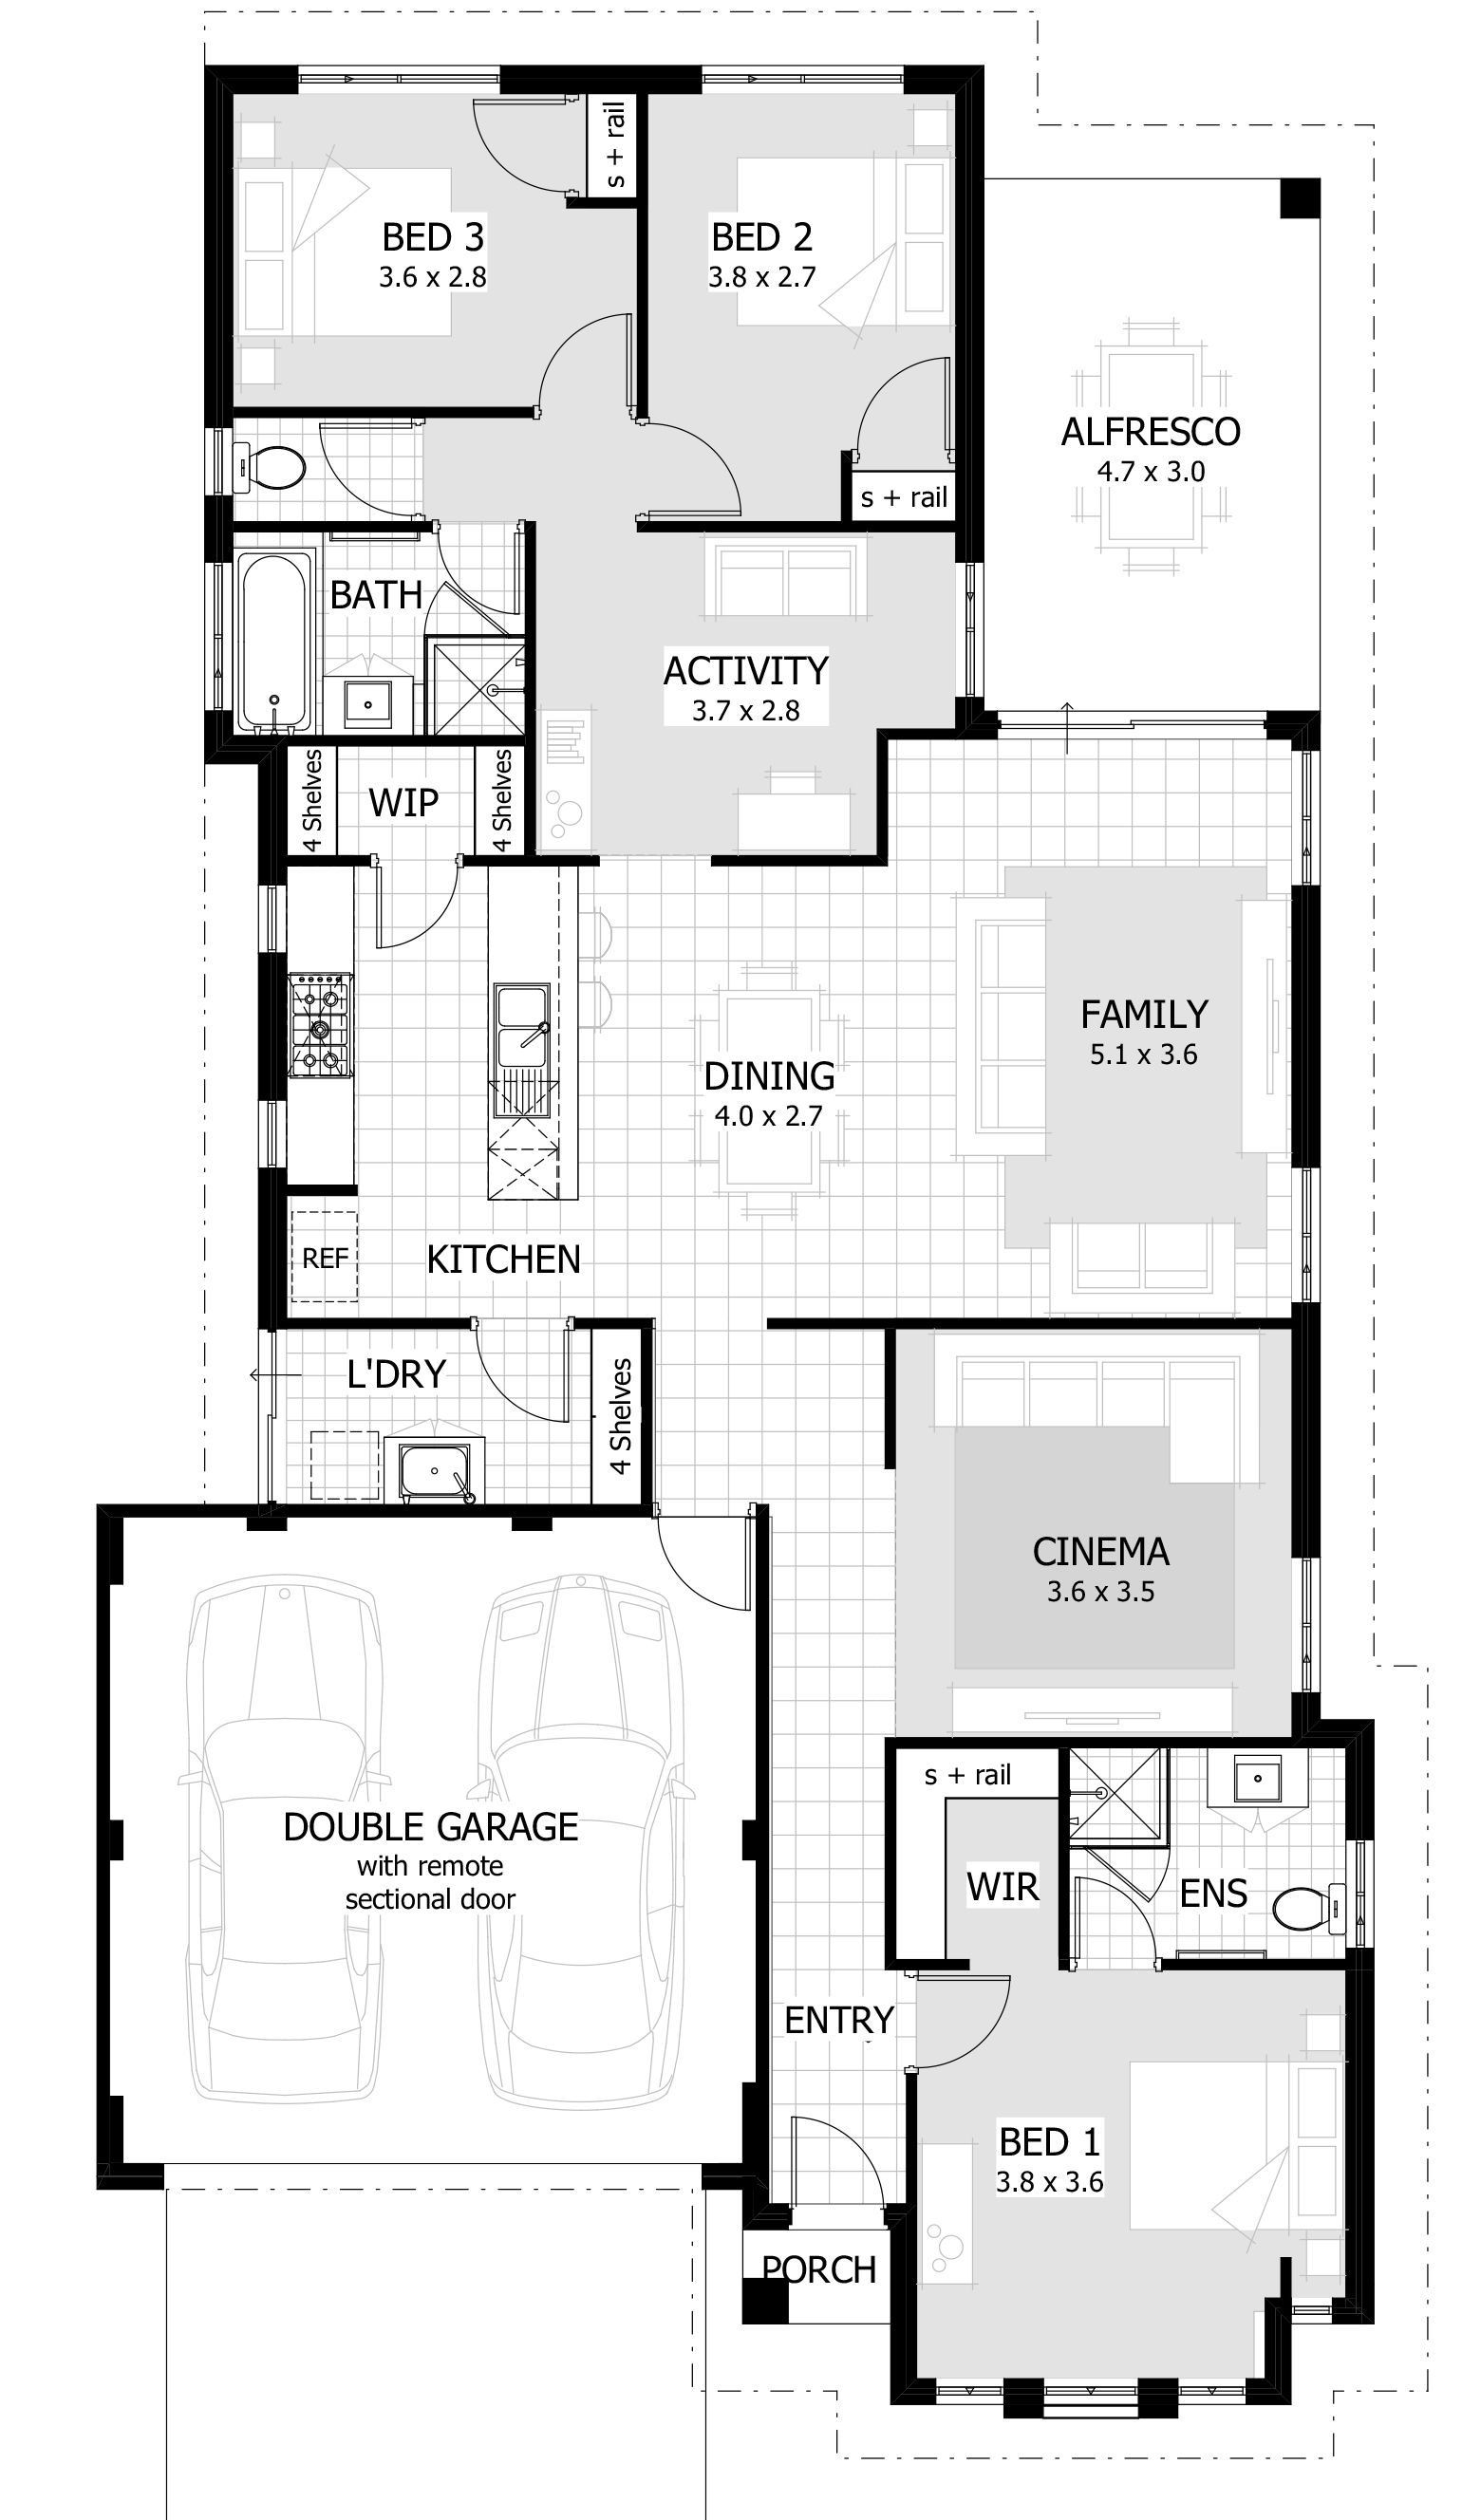 Pin By Ros On Planos In 2020 Single Storey House Plans Floor Plan Design Bedroom House Plans